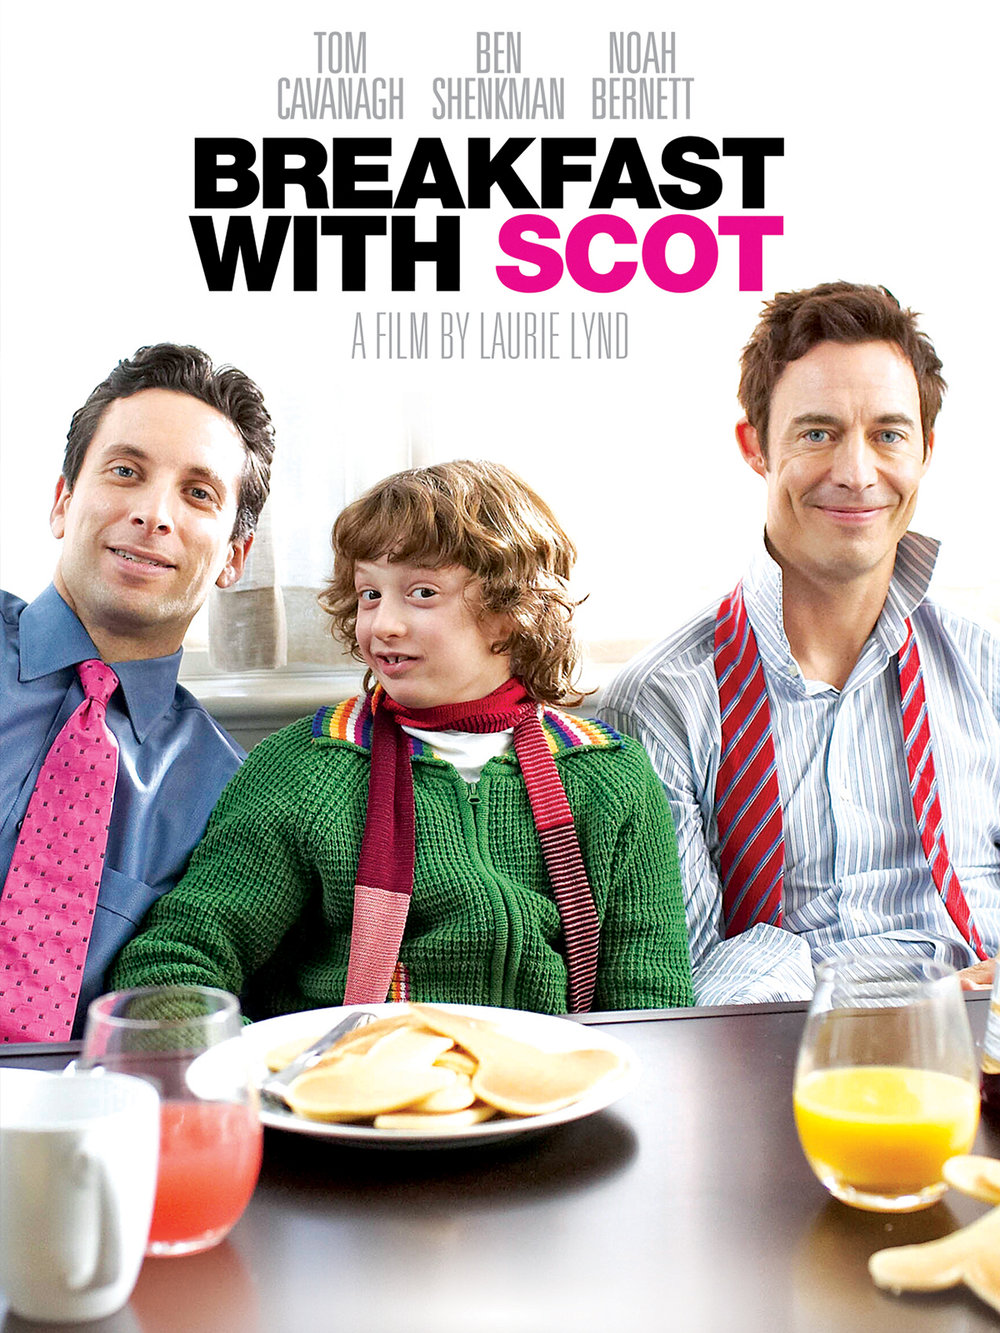 Here-BreakfastWithScot-Full-Image-en-US.jpg